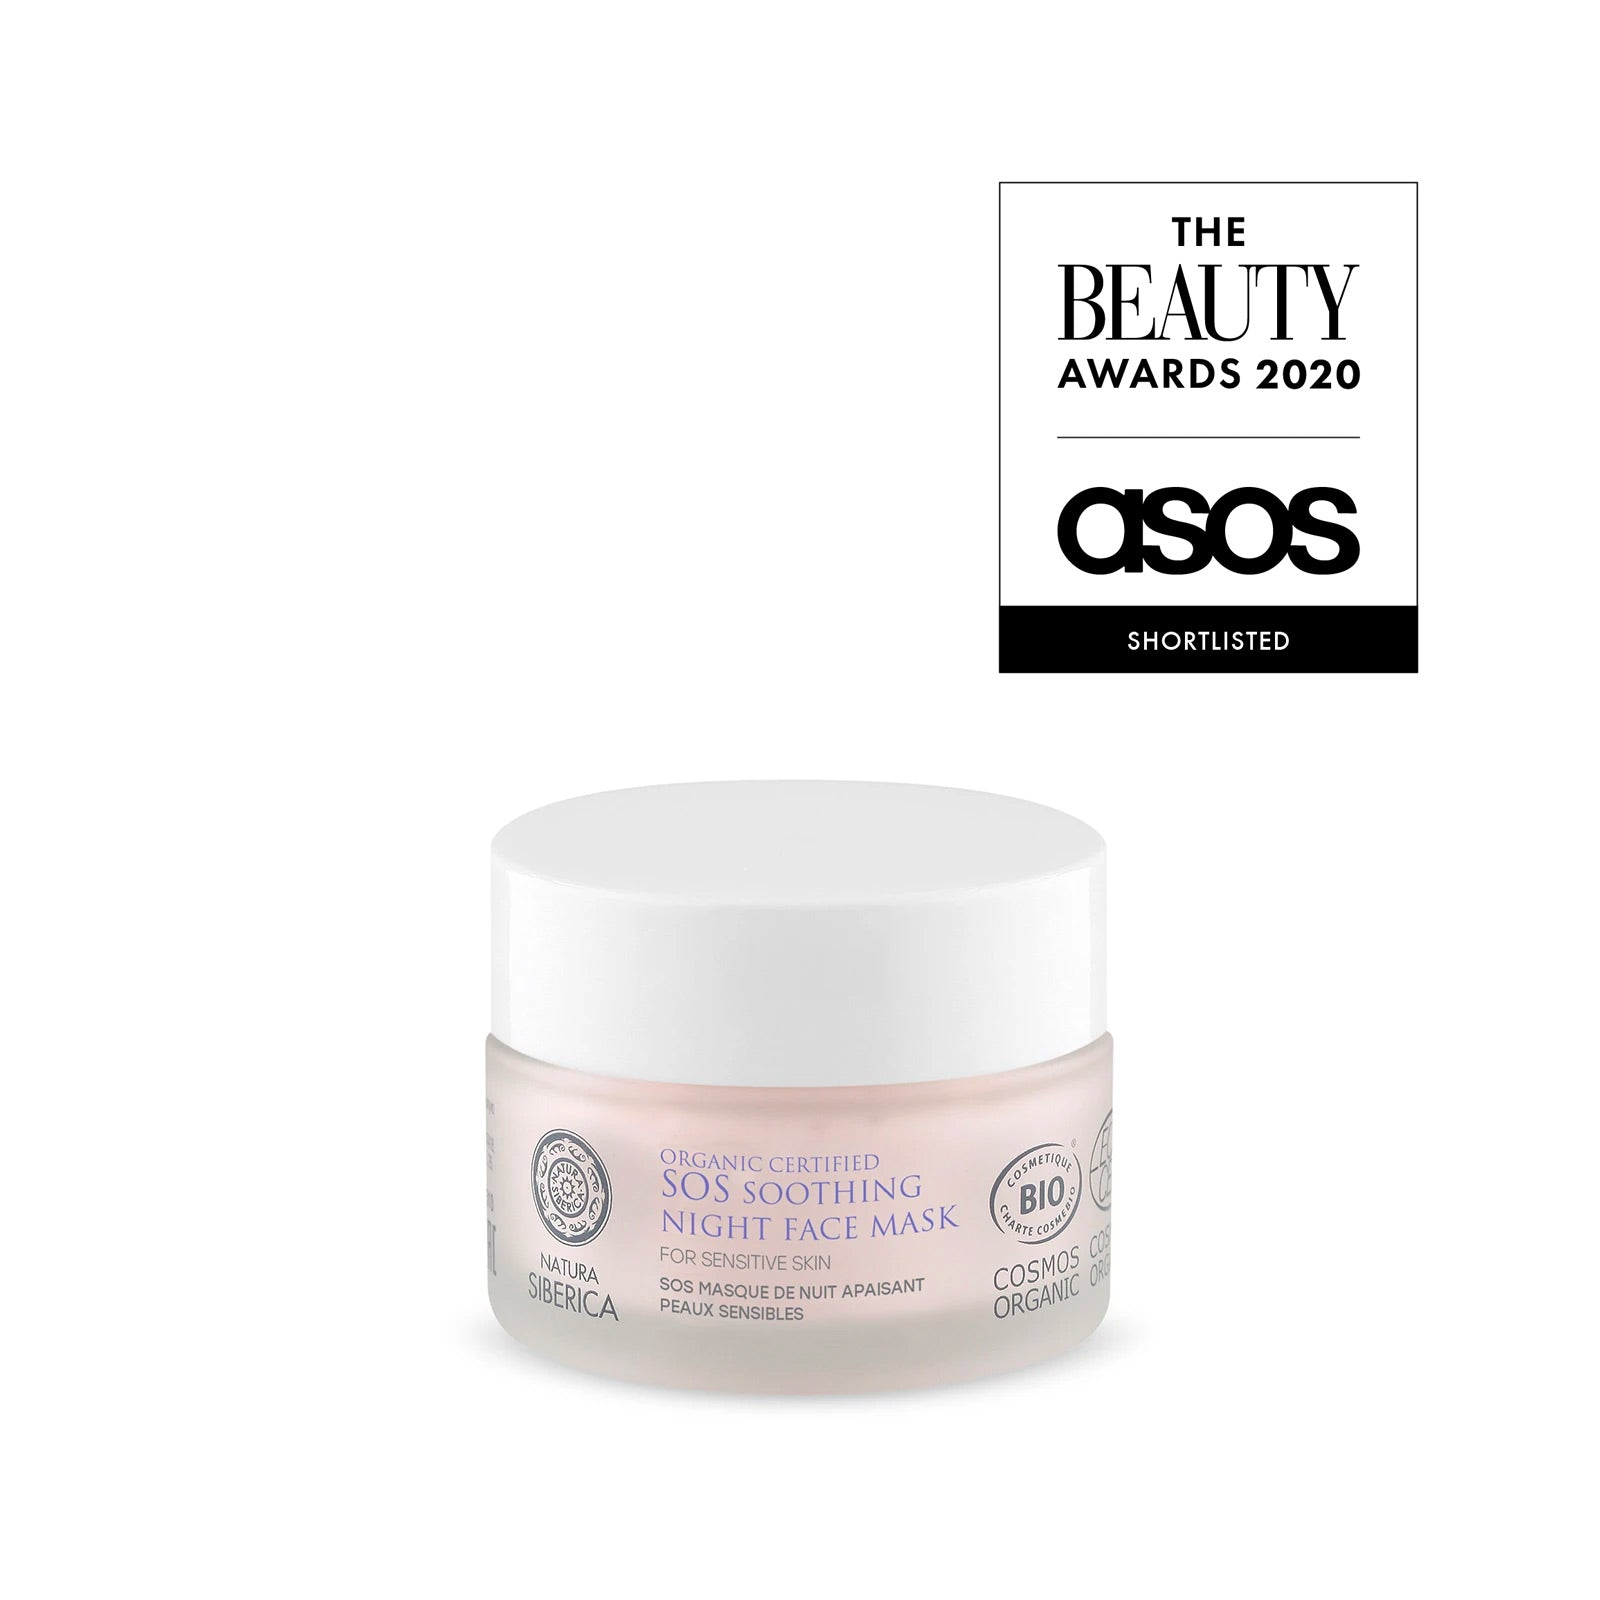 SOS Soothing Night Face Mask for sensitive skin, 50 ml